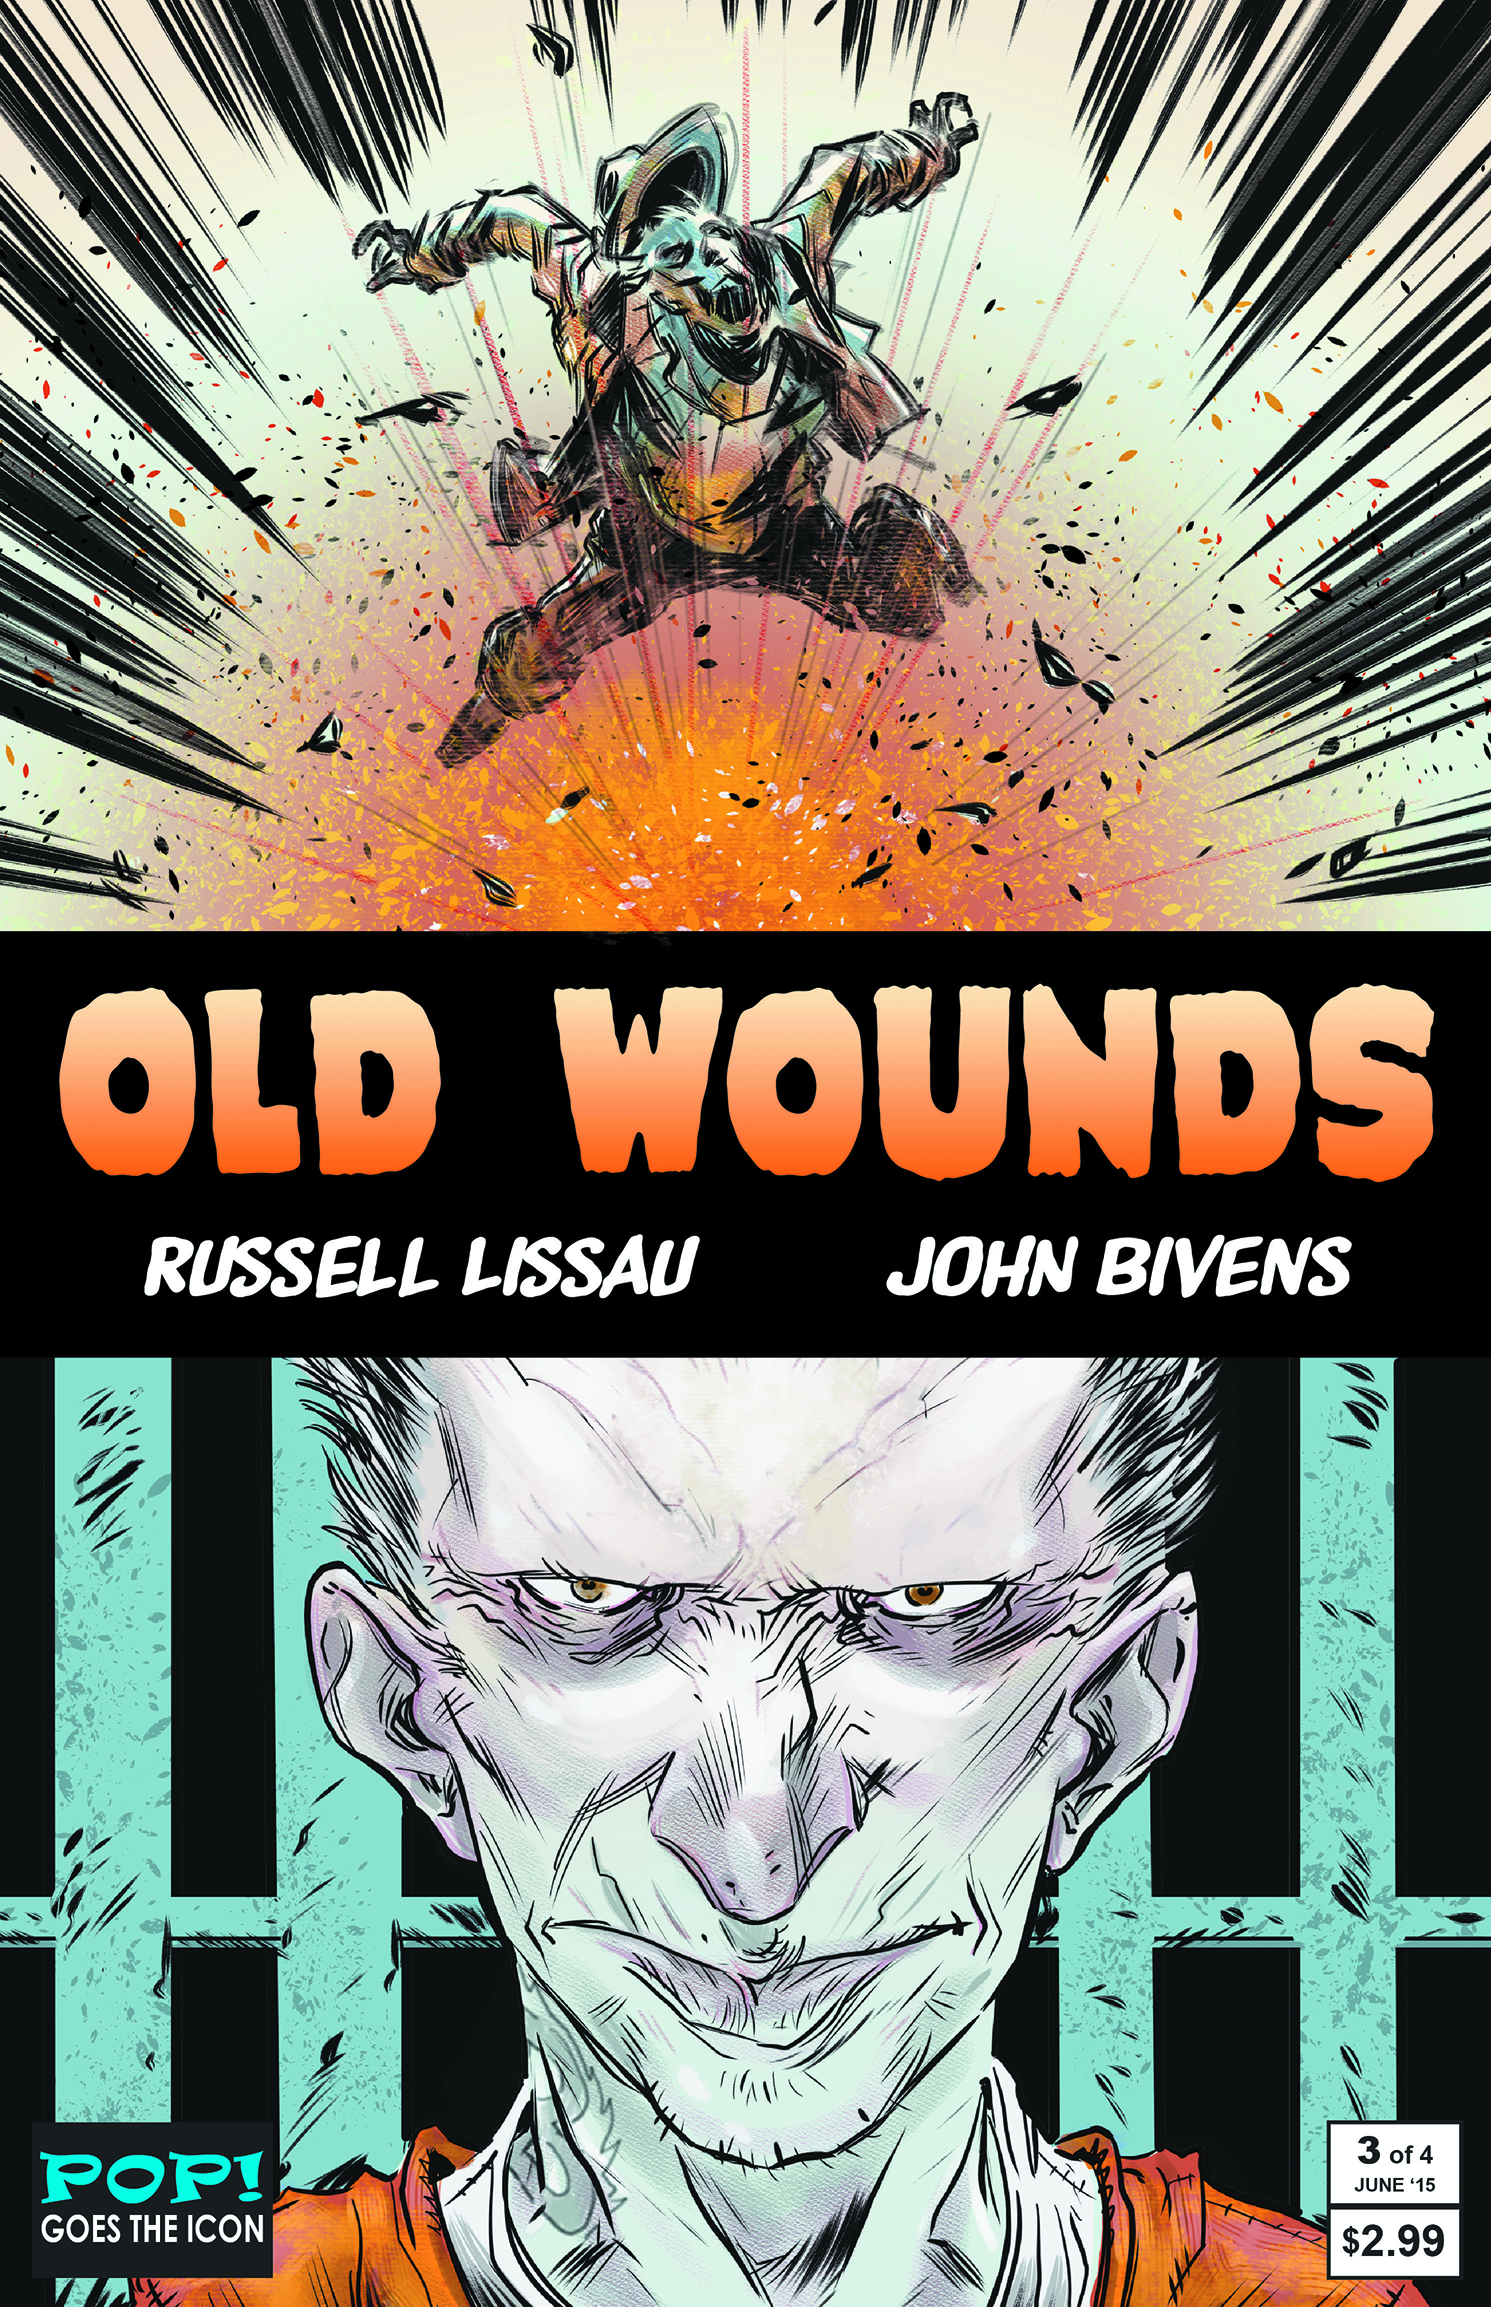 OLD WOUNDS #3